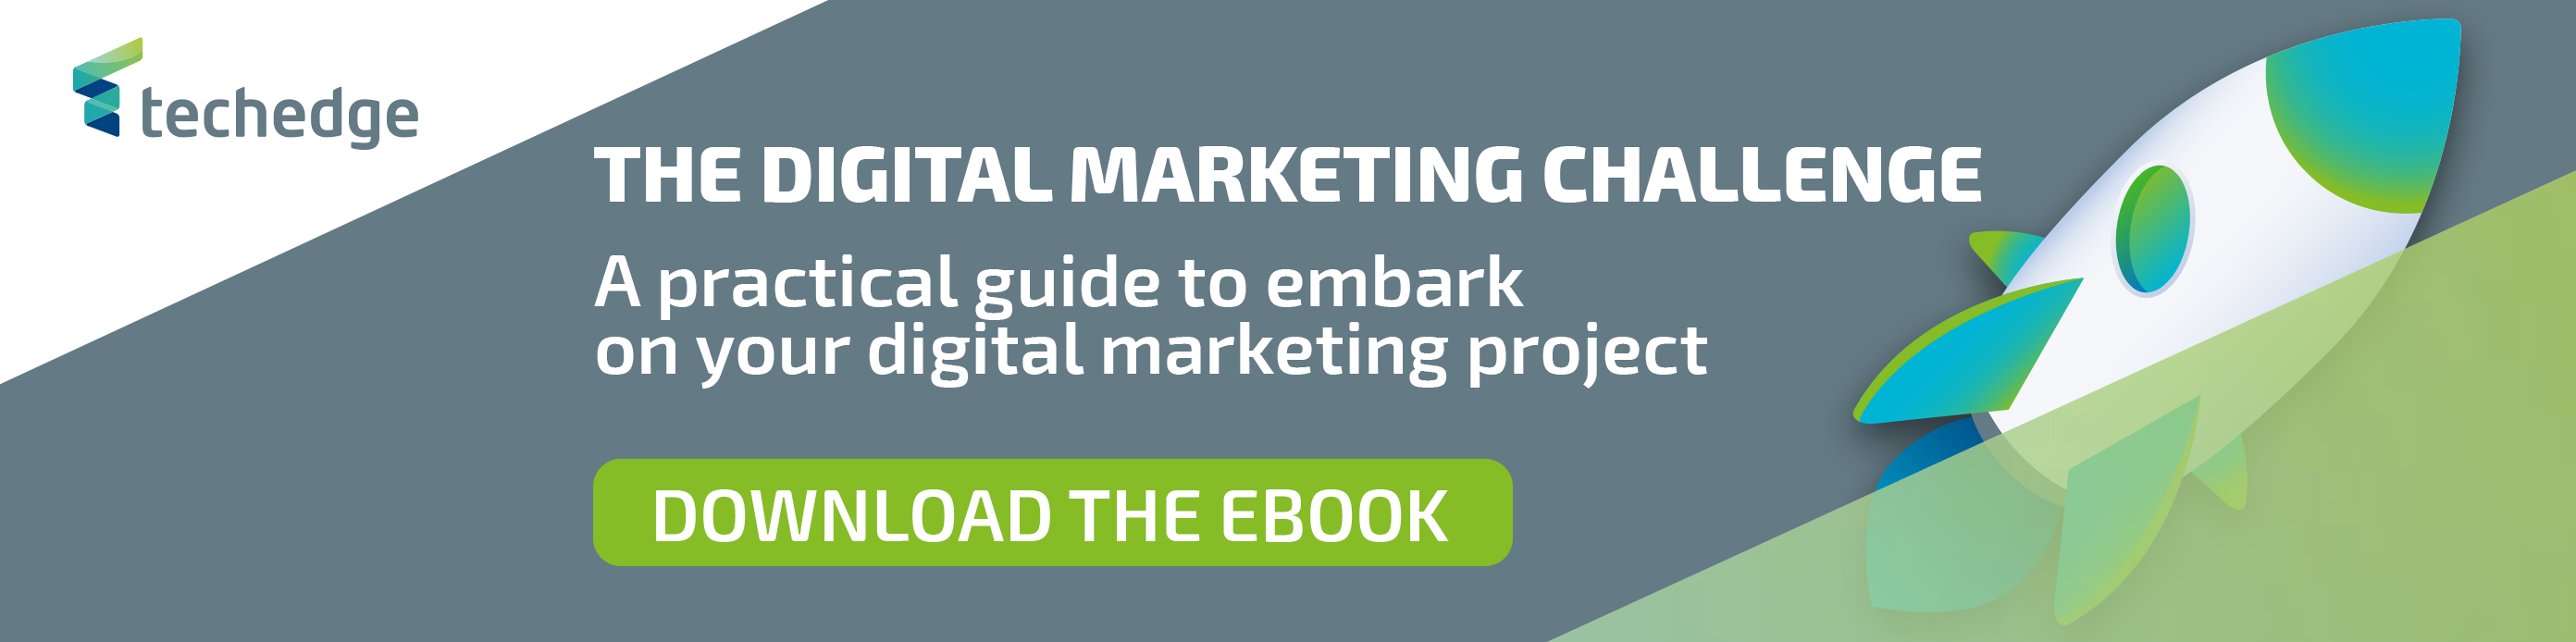 The digital marketing challenge - Download the ebook